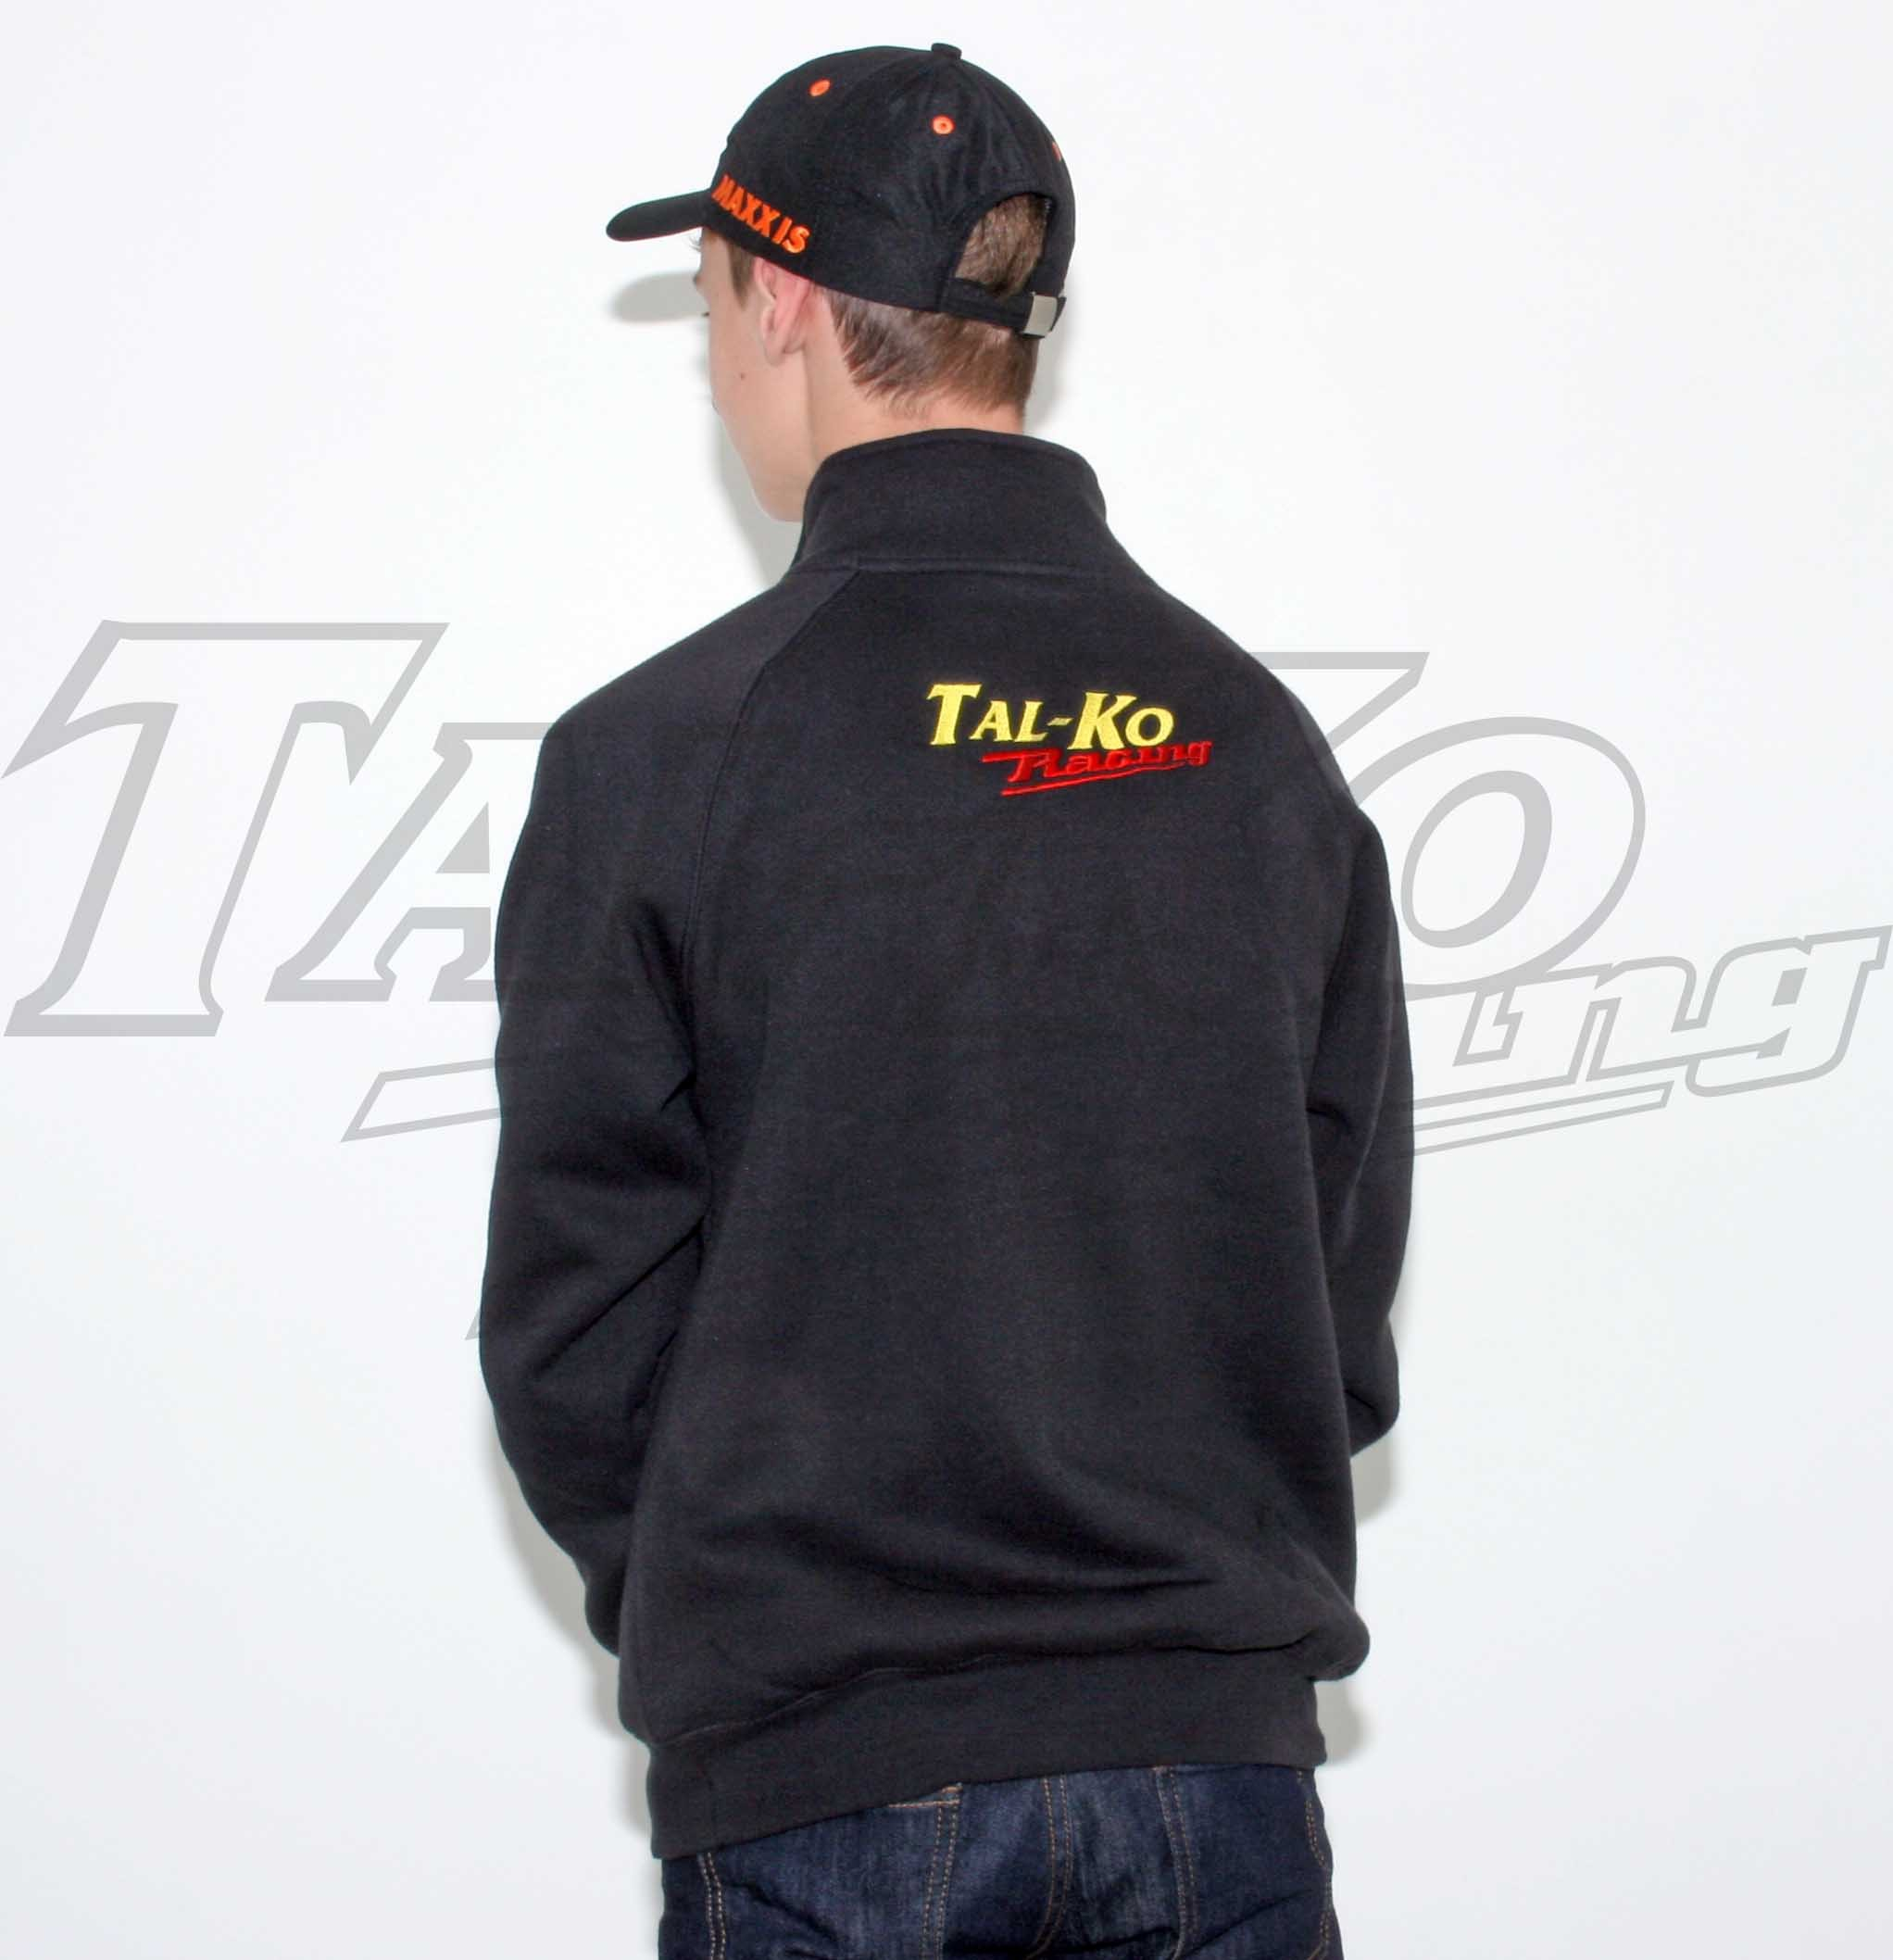 TAL-KO RACING SWEAT SHIRT ZIP NECK M